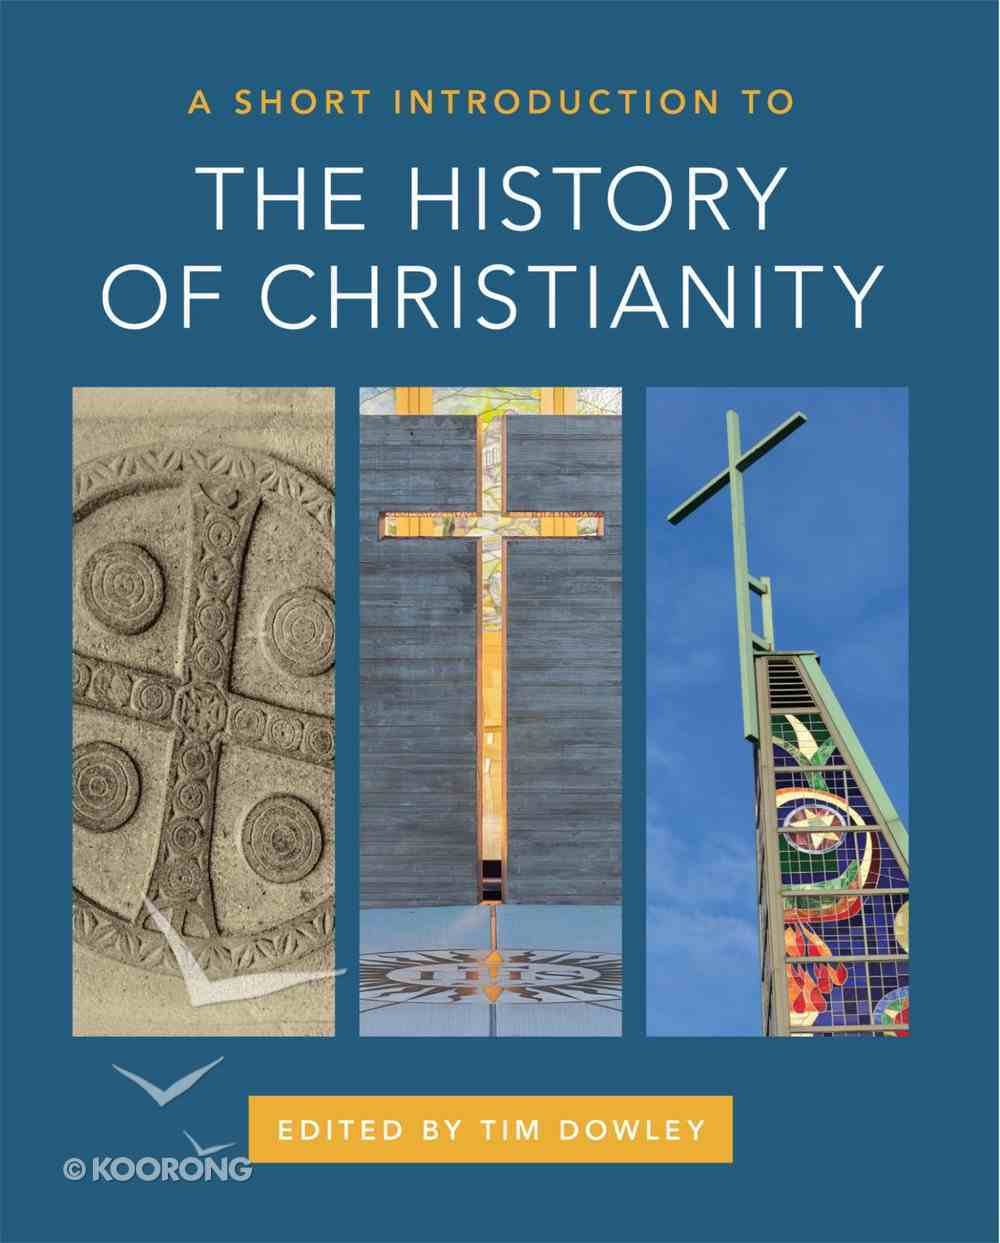 A Short Introduction to the History of Christianity eBook